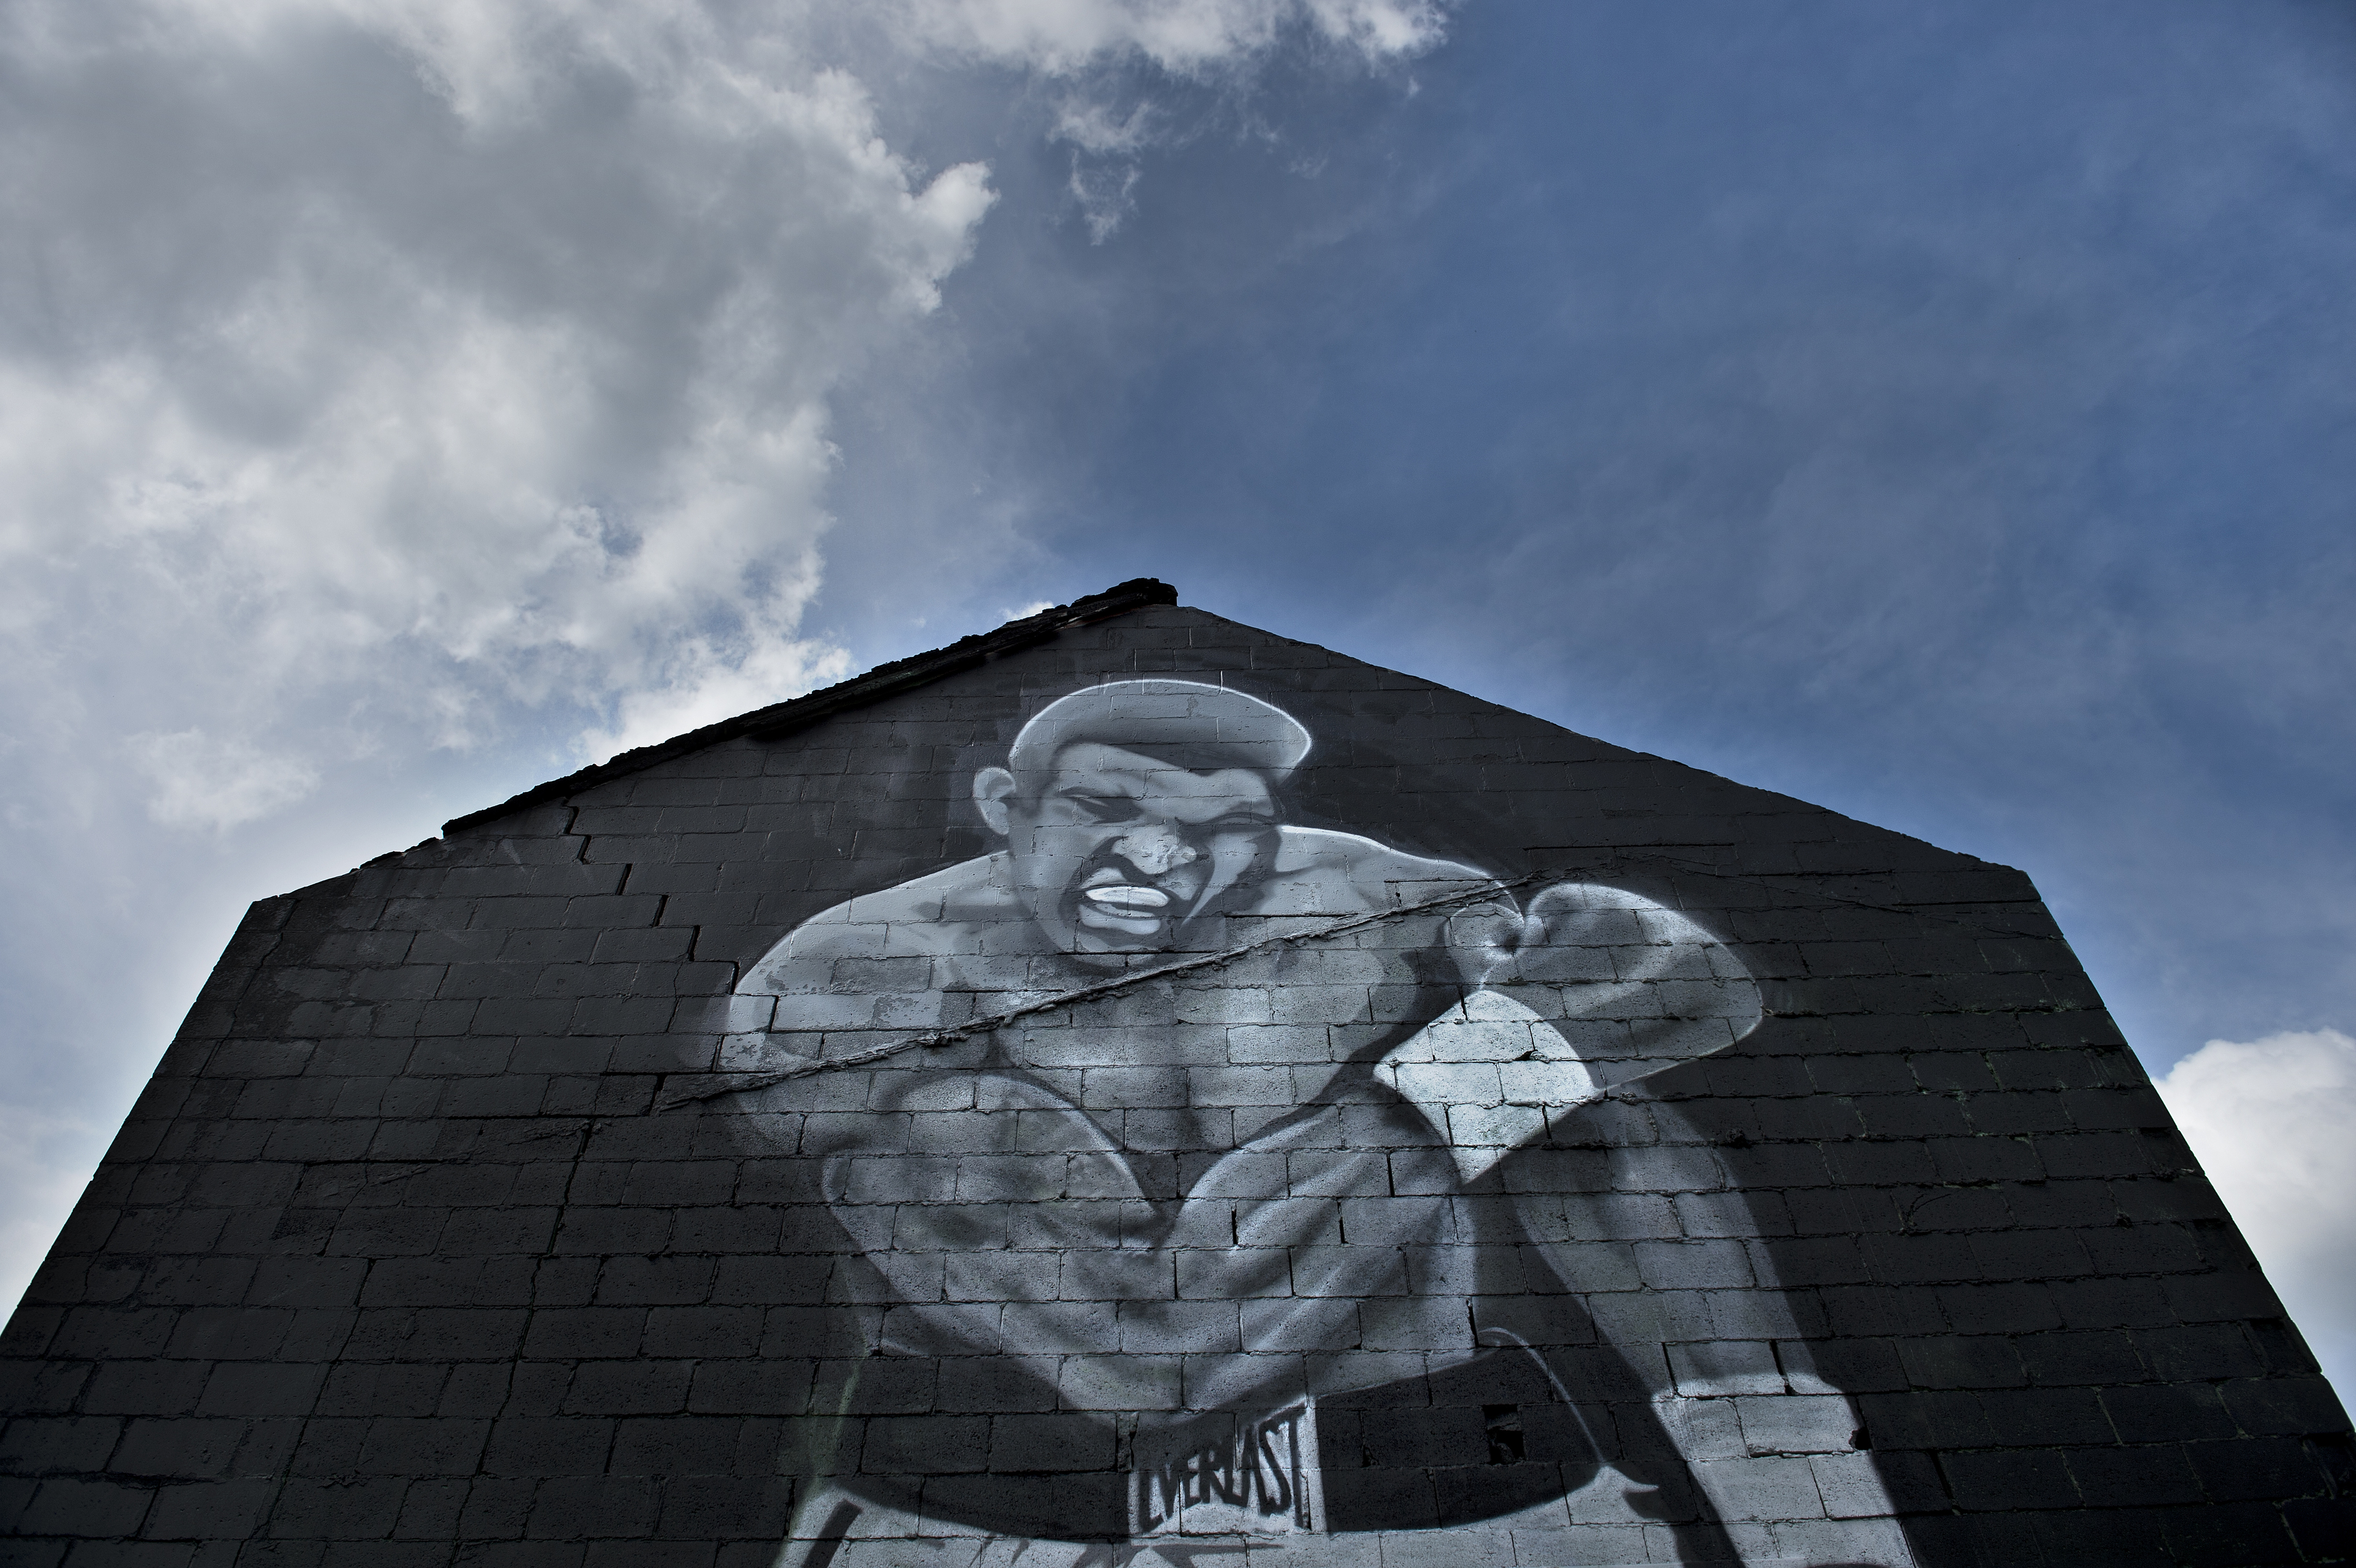 A mural with the image of boxing legend Muhammad Ali died June 3 at age 74 after a long battle with Parkinson's disease. / AFP PHOTO / Brendan Smialowski